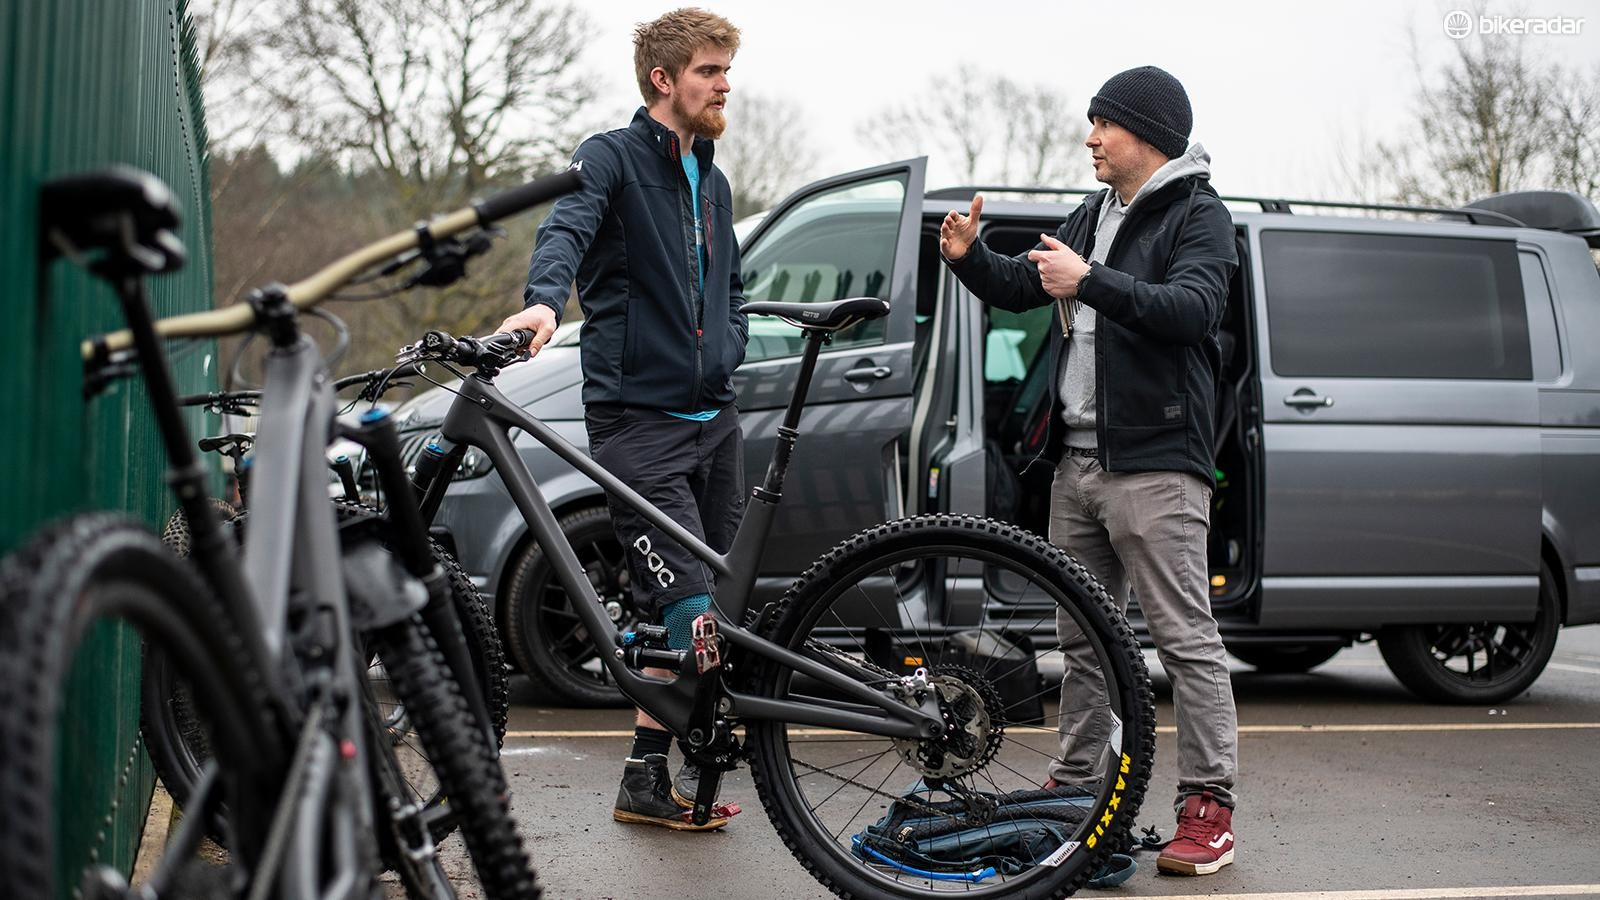 Owen Pemberton is at the cutting edge of size-specific bike design. A Druid designed to fit me (XL) and him (Medium) have similar front-to-rear proportions